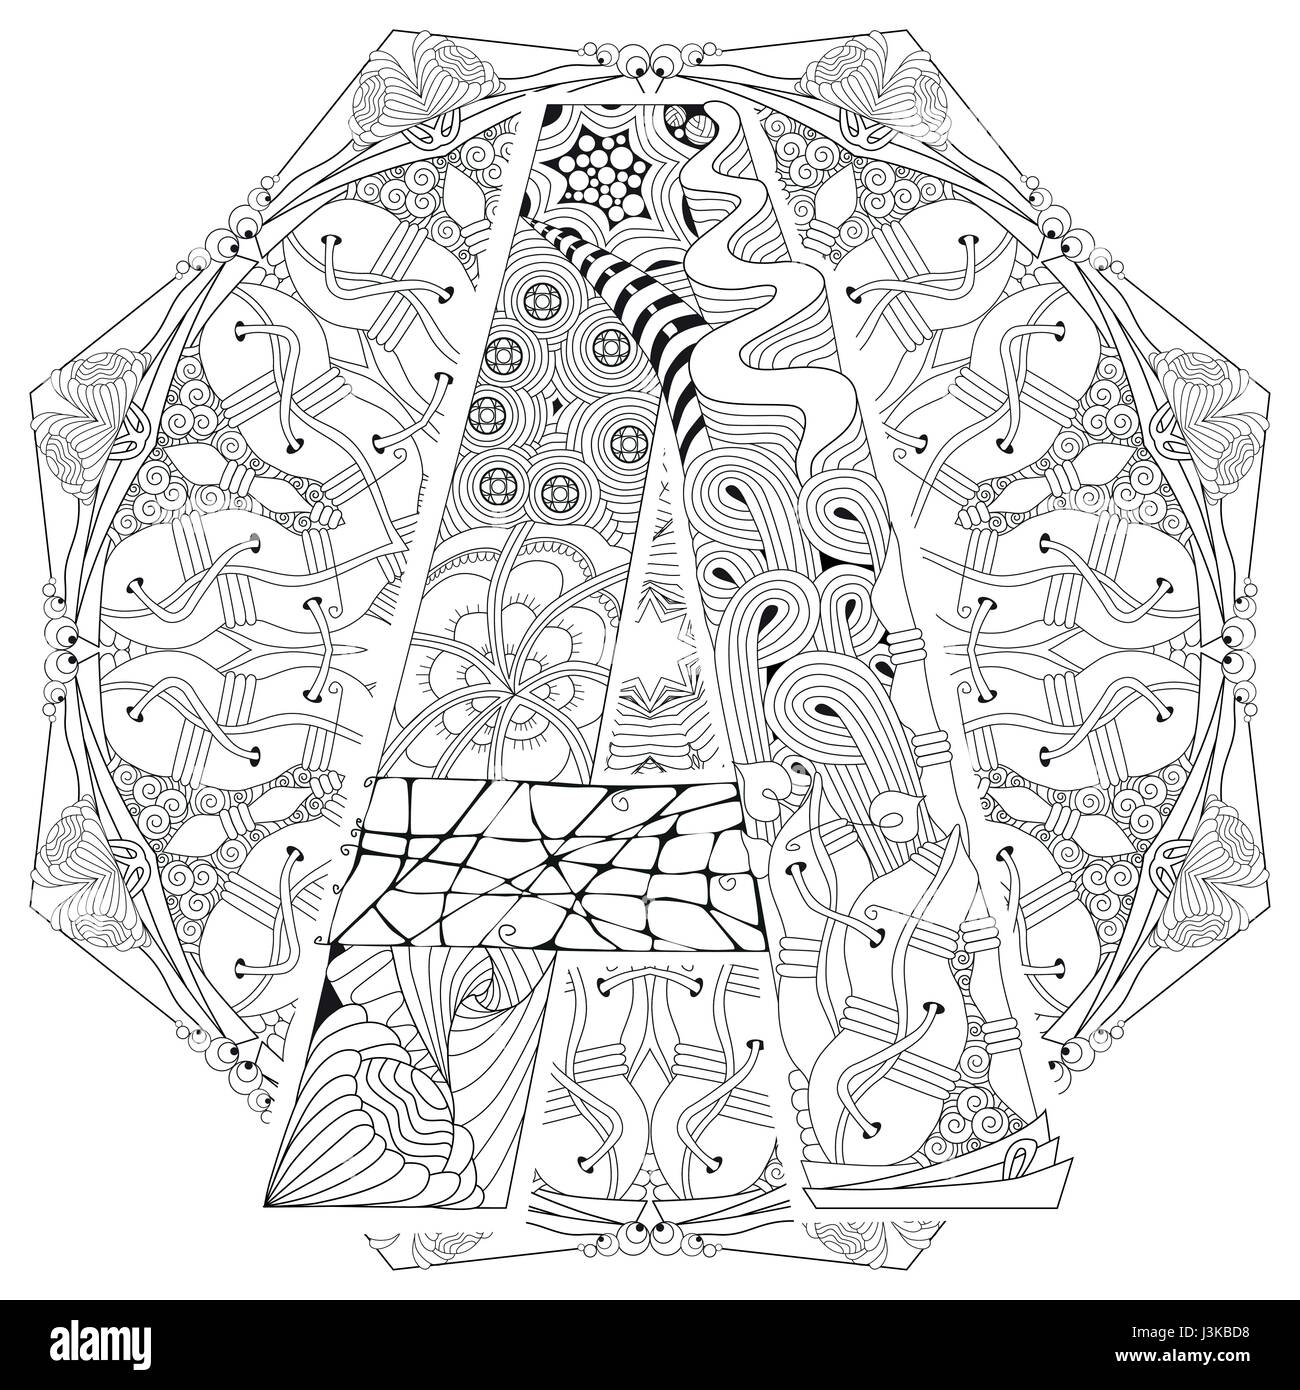 Mandala Con La Letra A Para Colorear Vector Zentangle